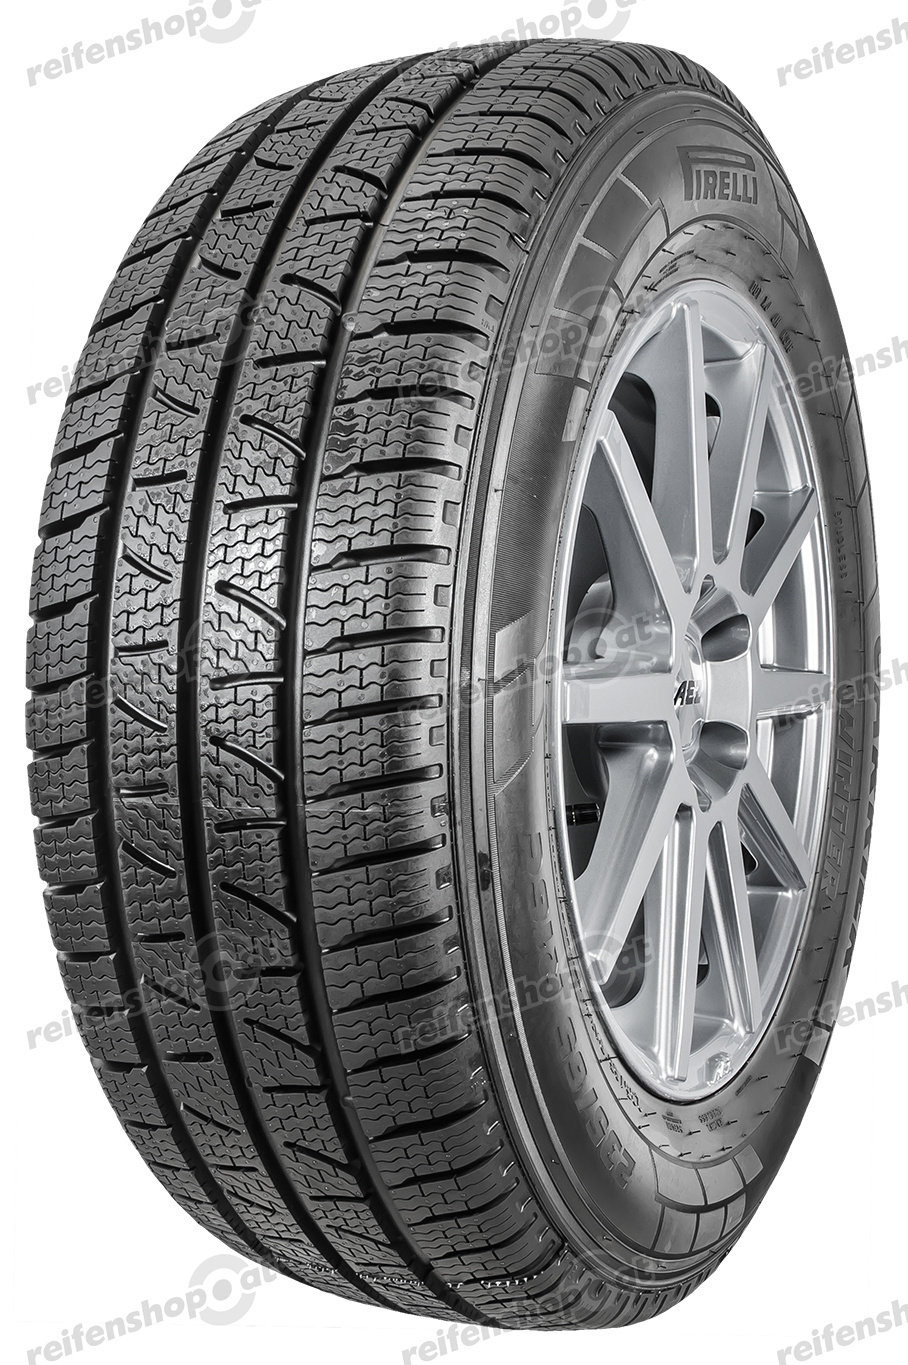 205/70 R15C 106R/104R Carrier Winter  Carrier Winter